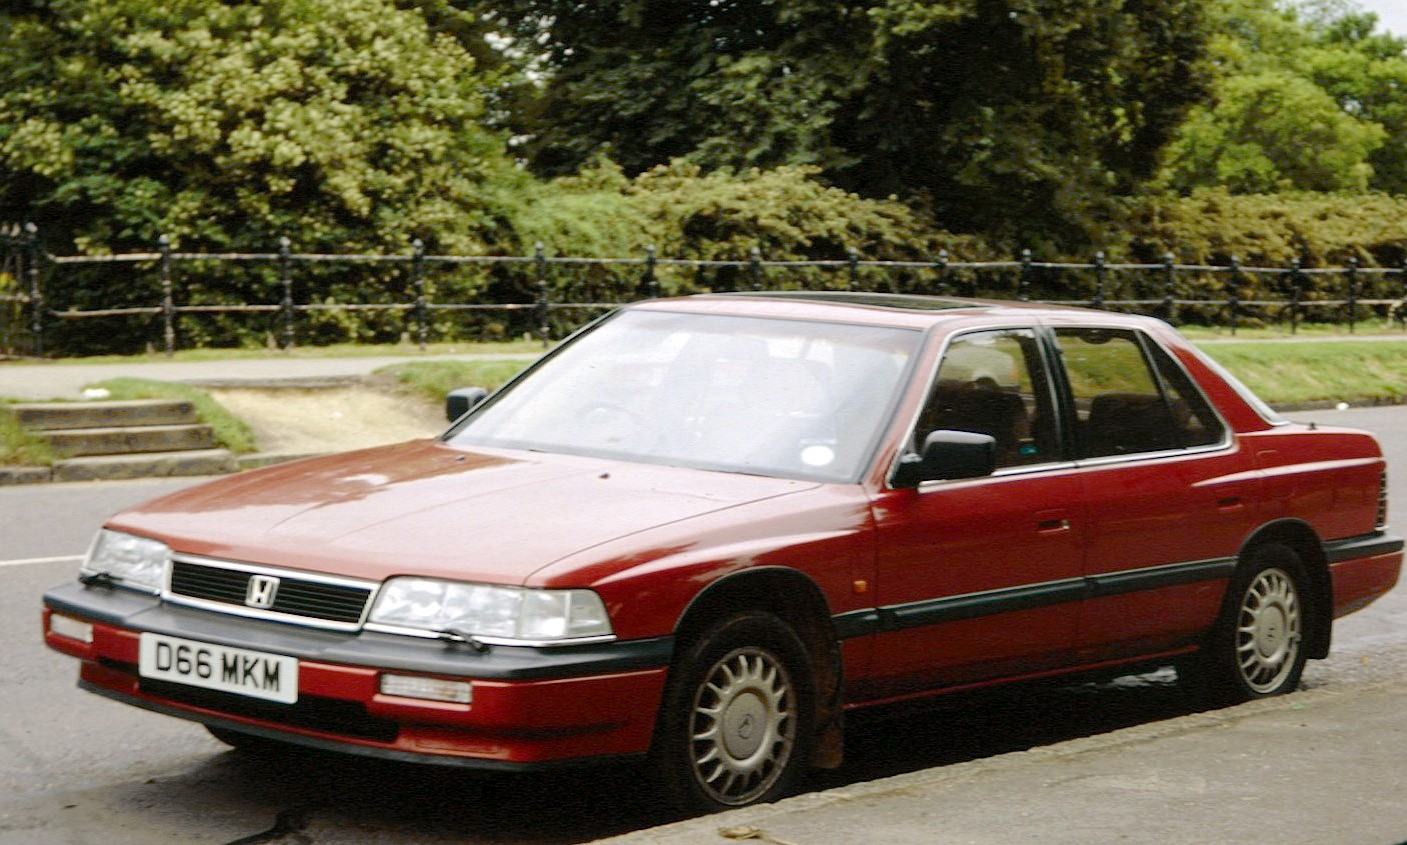 1991 Daewoo Arcadia (ce)   pictures, information and specs - Auto